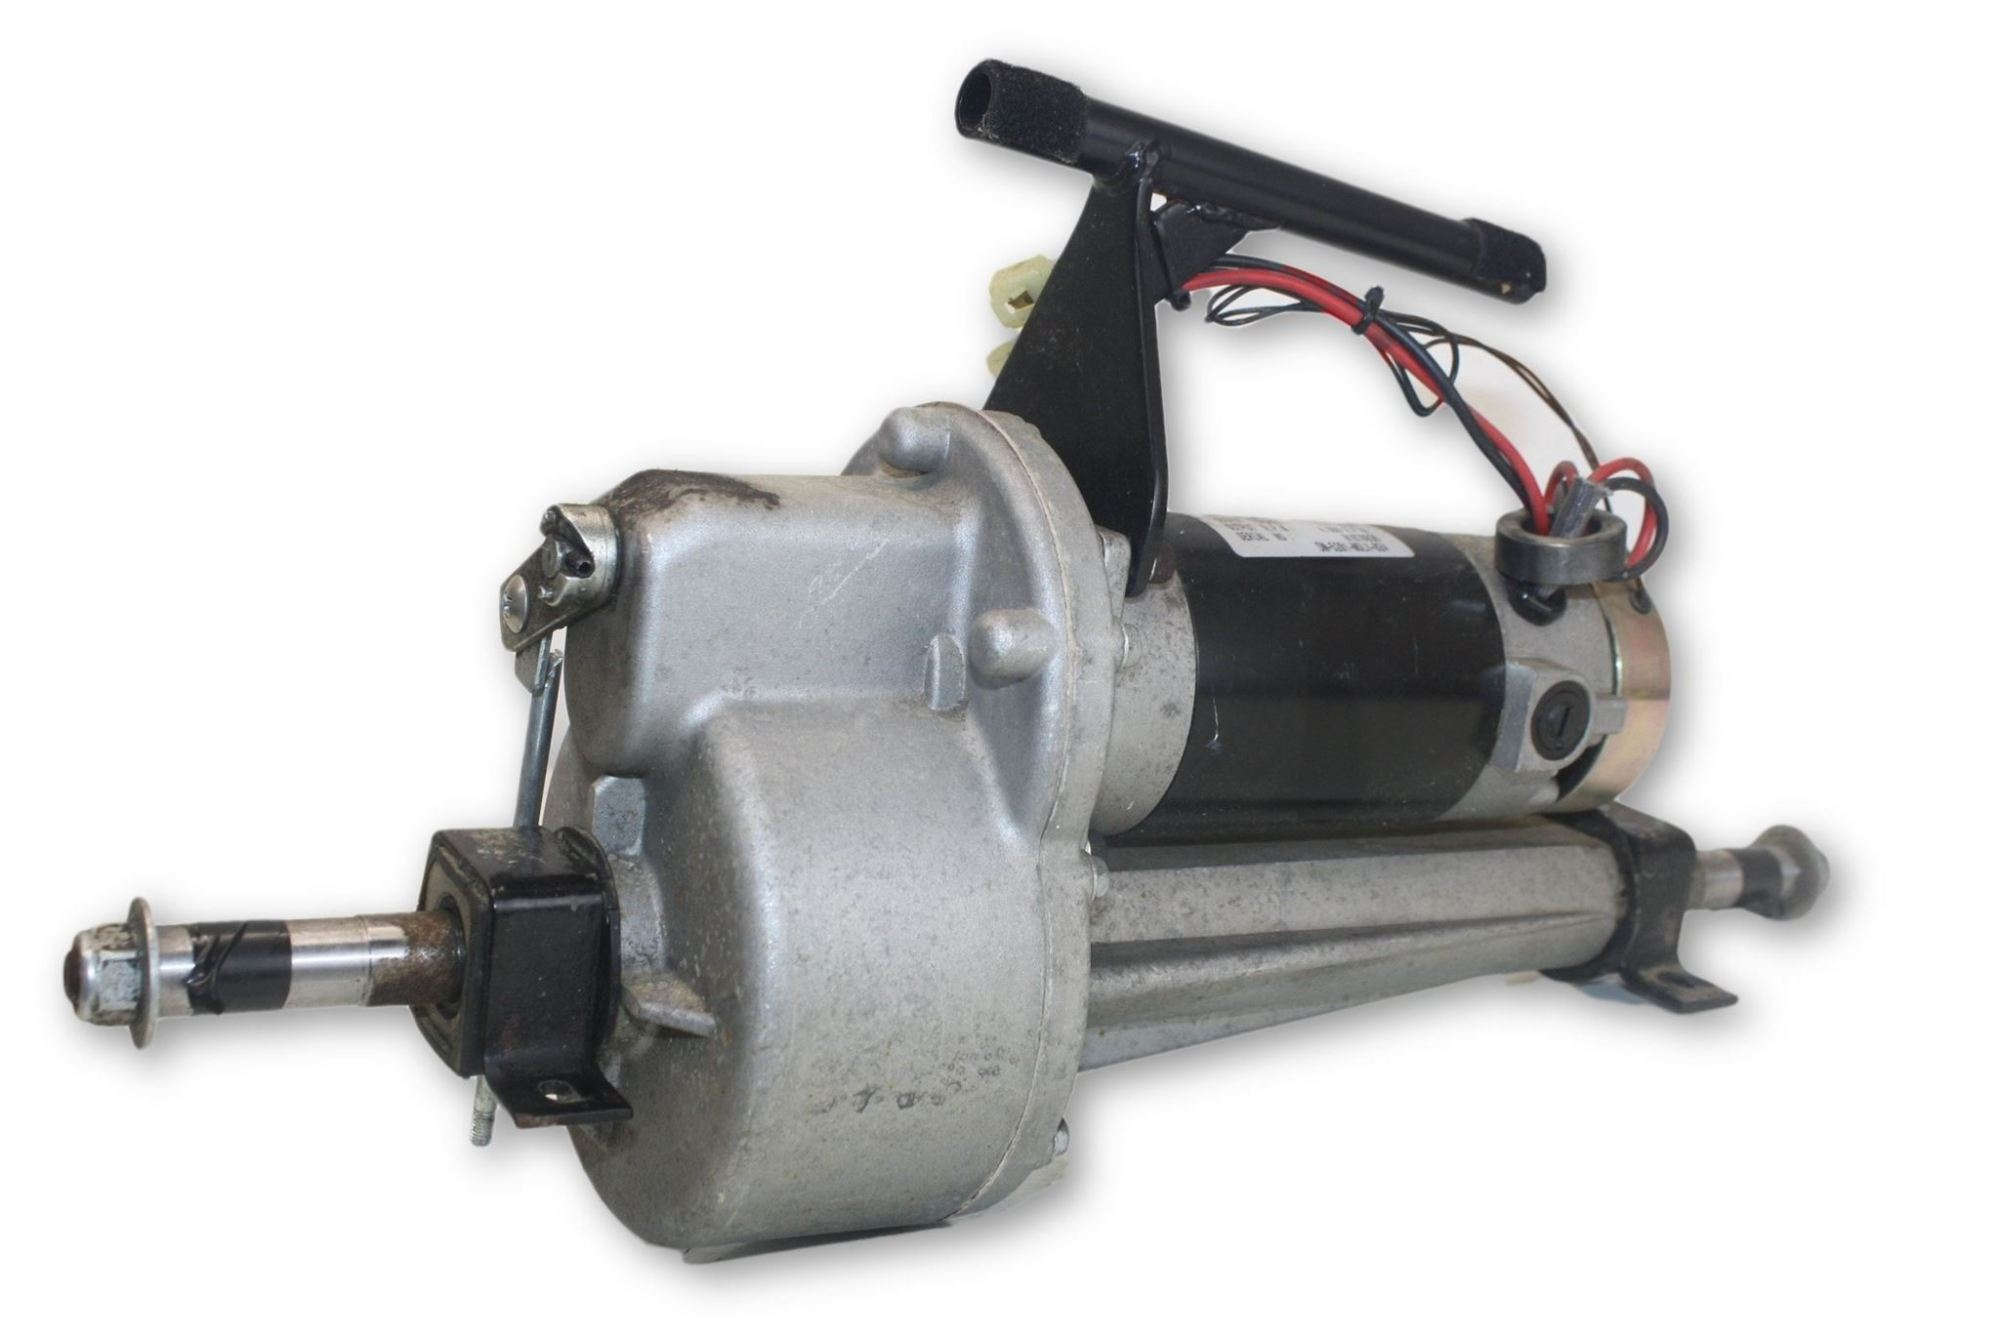 hight resolution of details about pride rally 3 electric scooter motor gearbox brake assembly dm 5201 molx 024